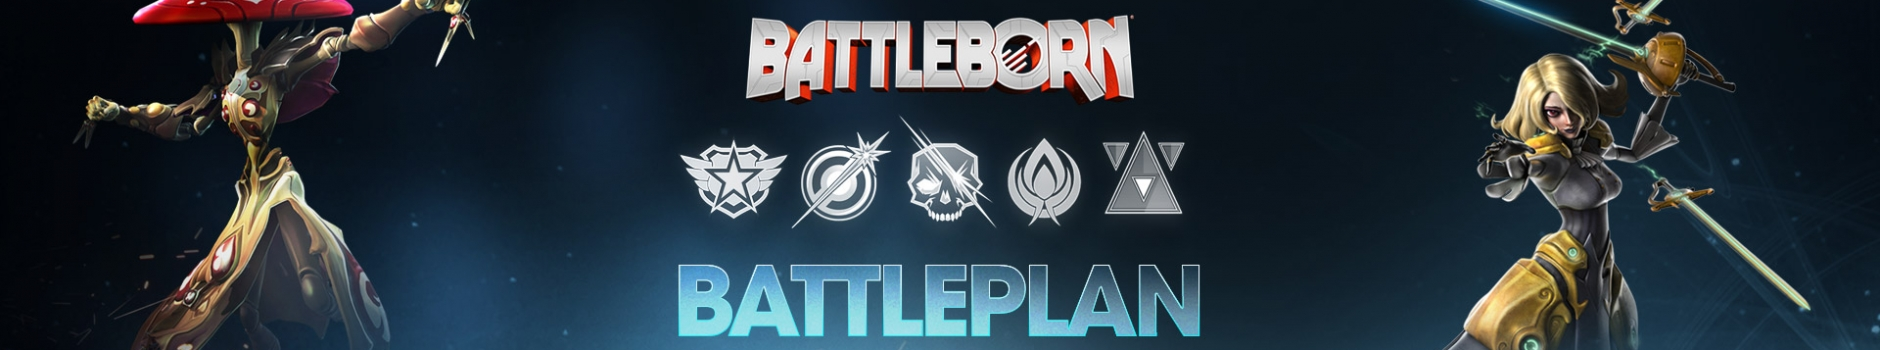 Battleplan 19: Play with the Devs Details, Matchmaking Insights, and the Return of Lootpocalypse!